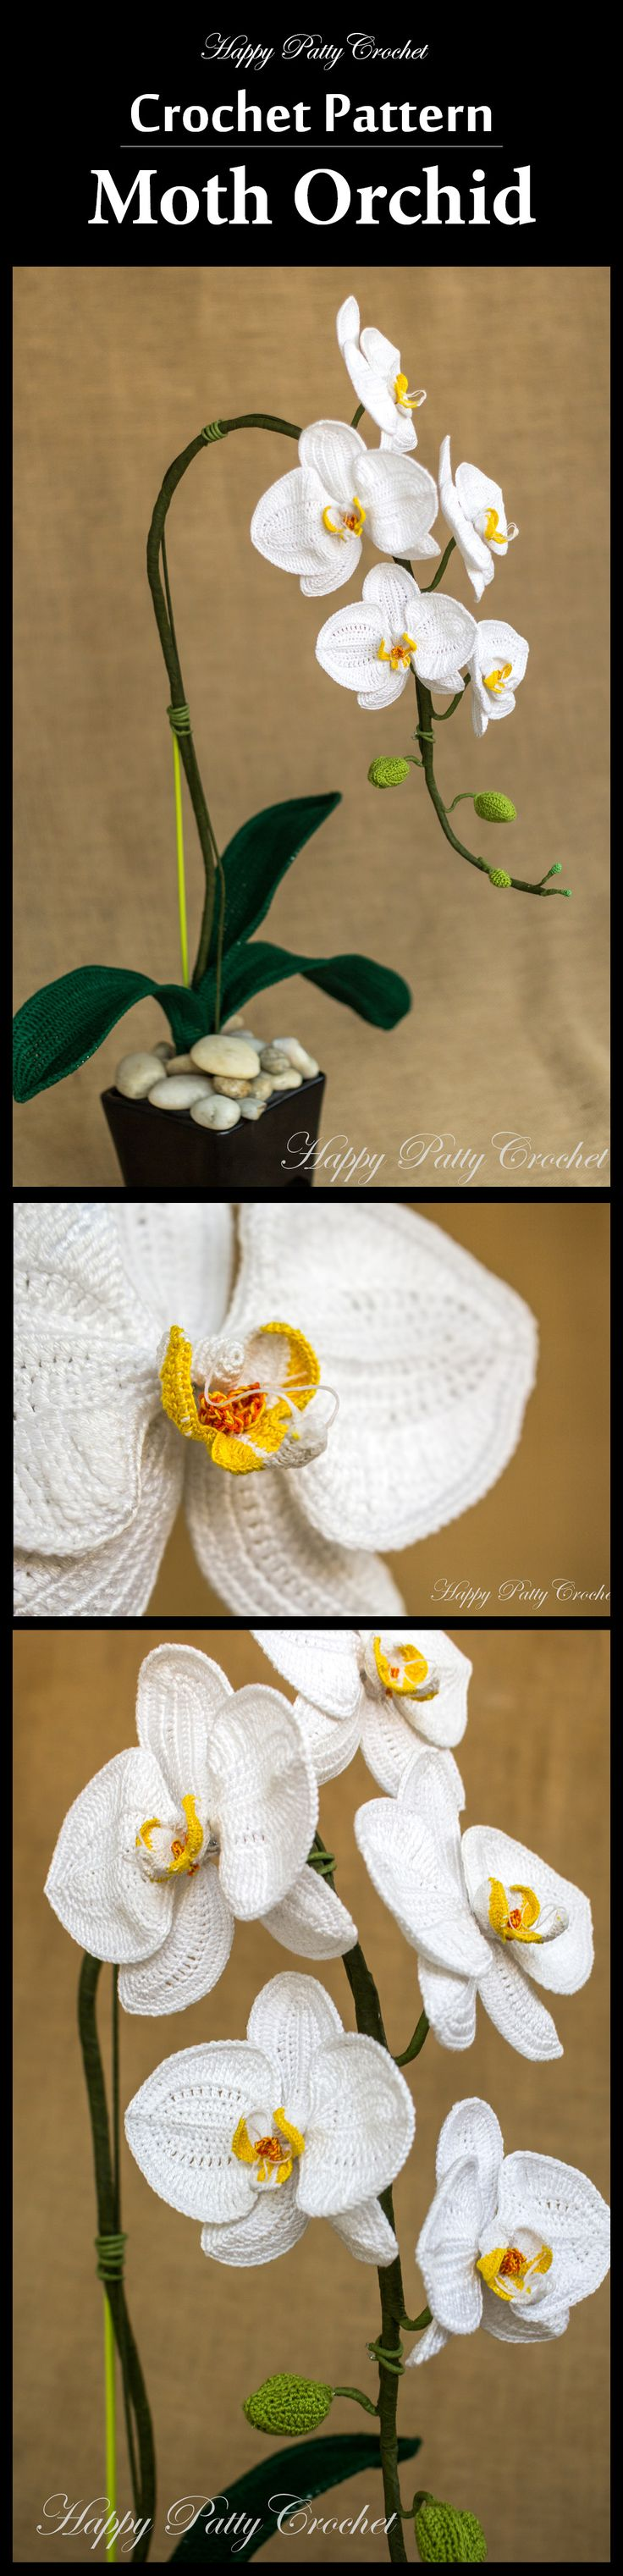 Crochet your own arrangements and wow your loved ones (or your home), make stunning bouquets, an attractive brooch, hair accessory or use the blossoms as centerpieces or secondary piece in almost any decorative settings. The e-book includes patterns for Phal (Phalaenopsis) Orchid blossoms in 2 sizes, 3 sizes of orchid buds and 2 sizes of leaves. All elements needed for a beautiful arrangement. #crochetorchid #mothorchid #phalorchid #fancydecor #orchidpattern